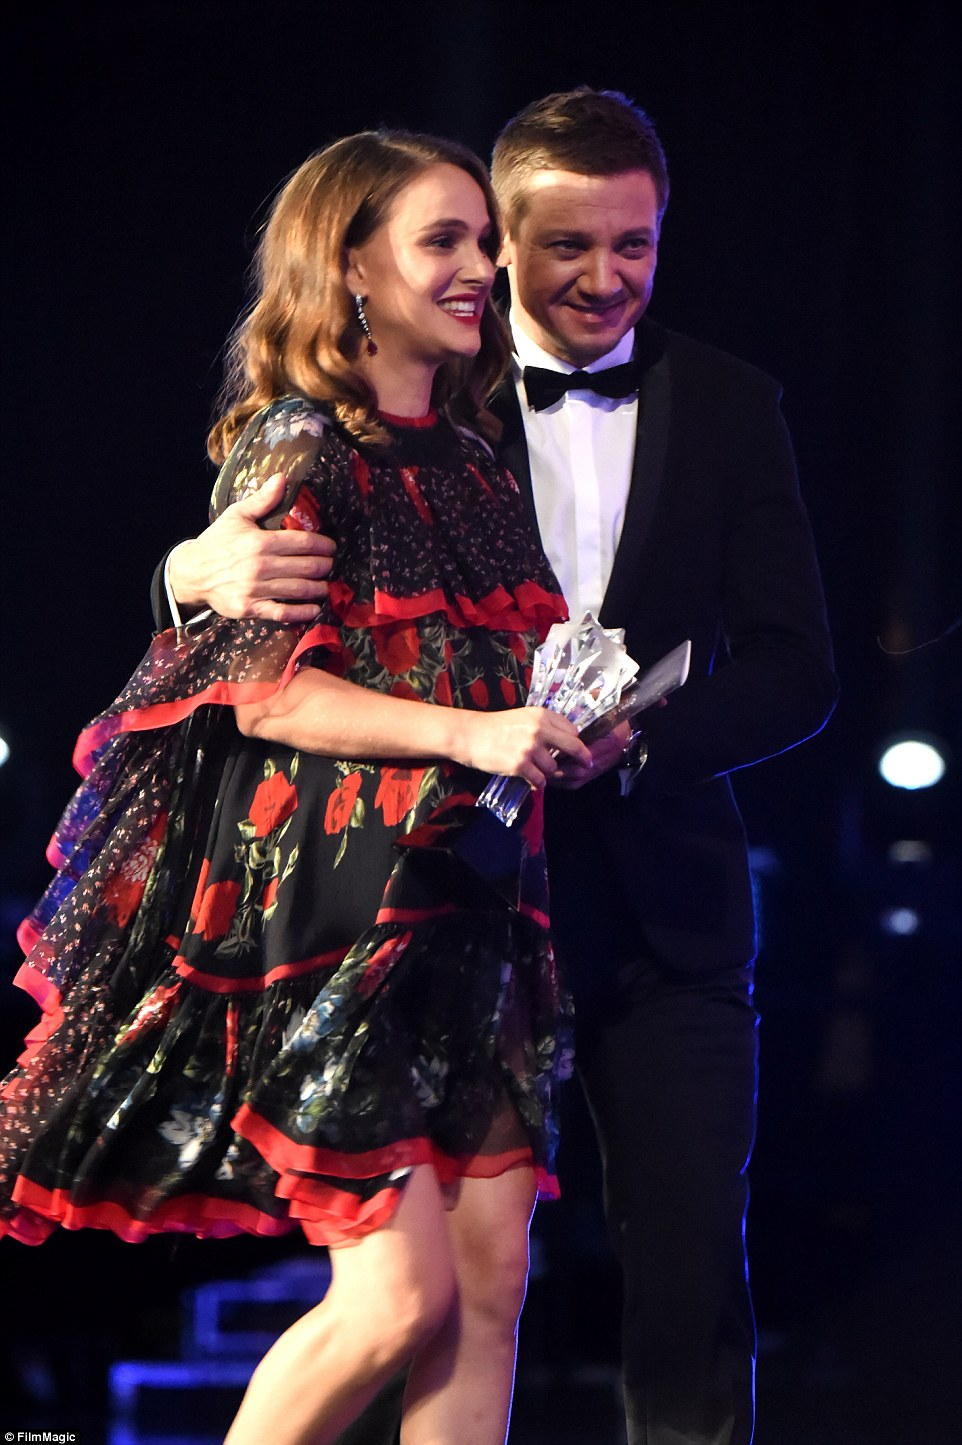 Helping hand: Jeremy Renner put his arm around Natalie as they walked off stage together